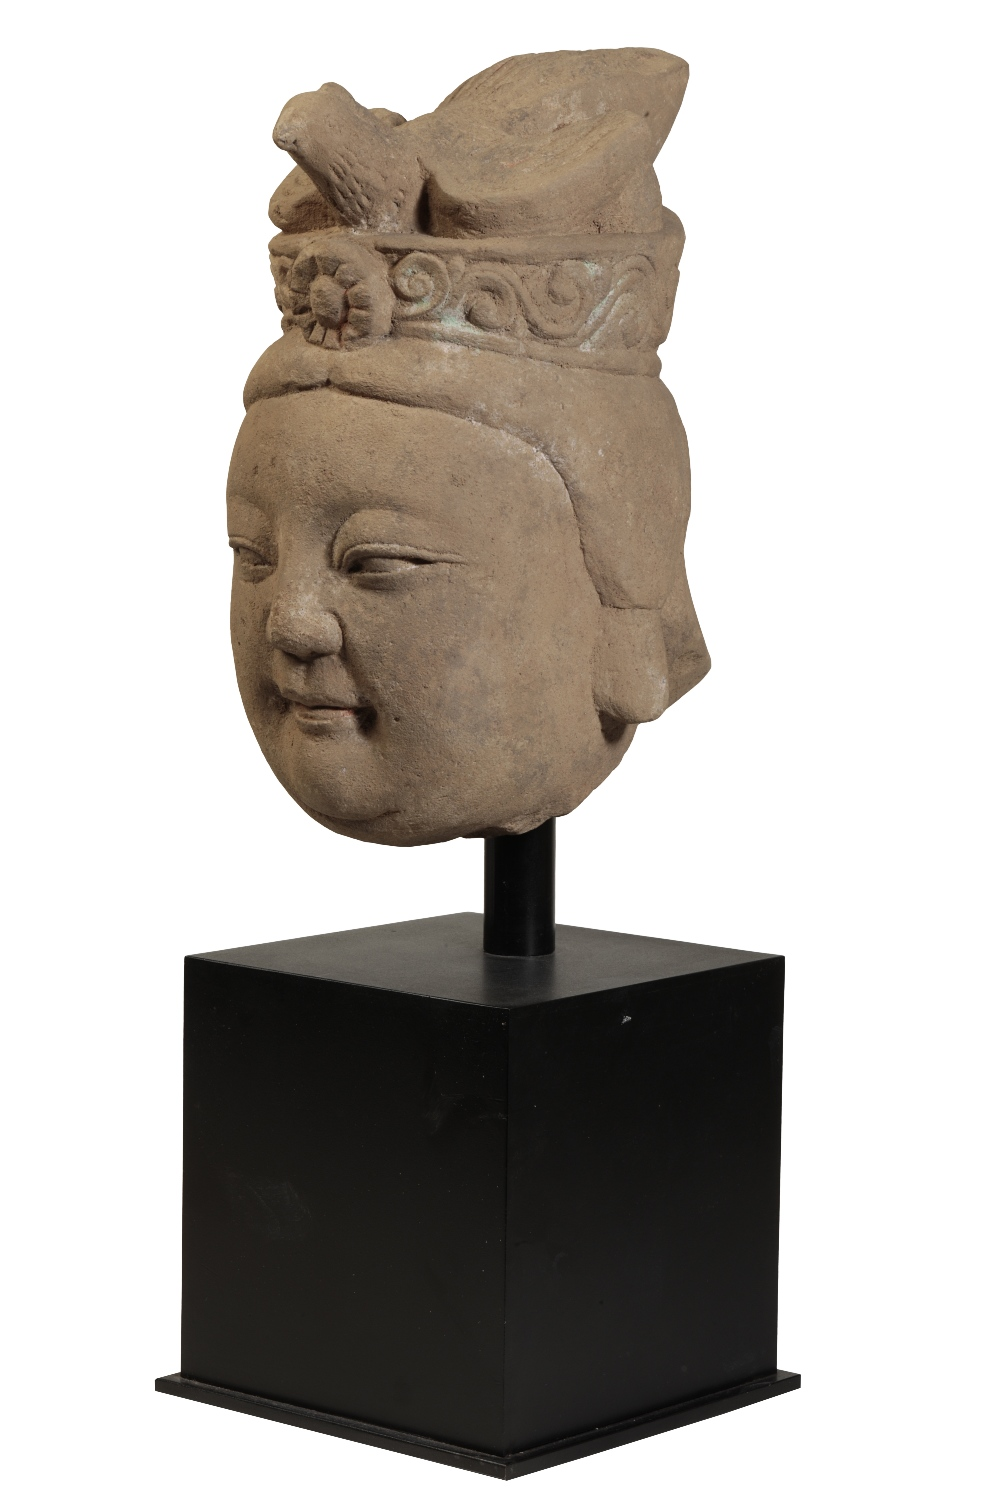 CARVED STONE BODHISATVA HEAD, MING OR LATER